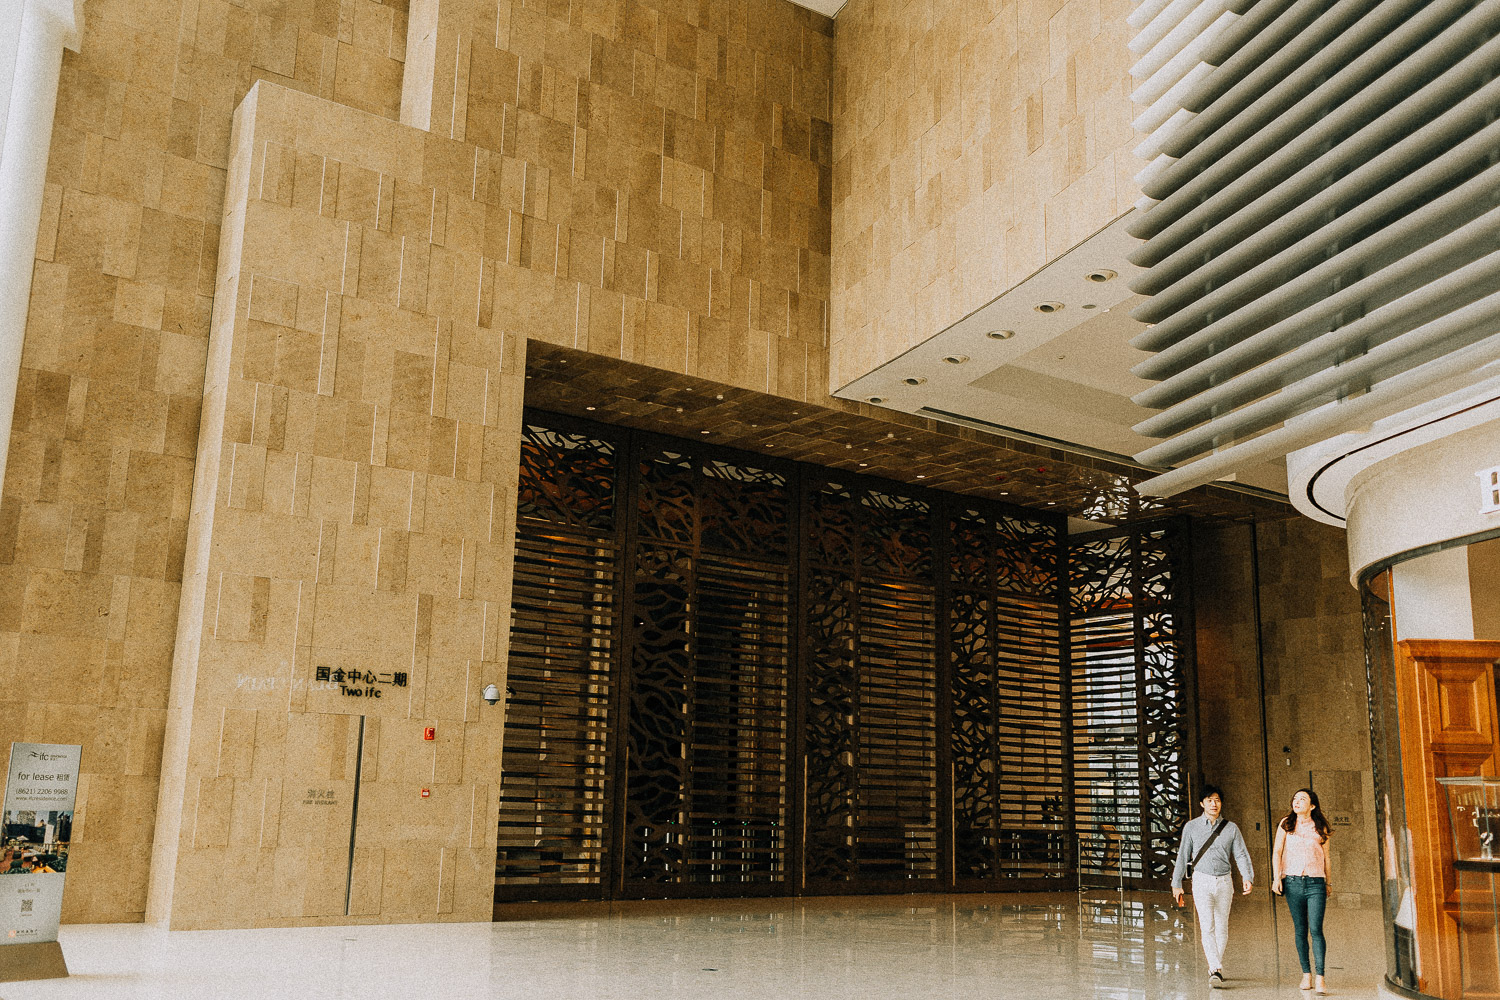 Image of two people walking inside the shopping mall